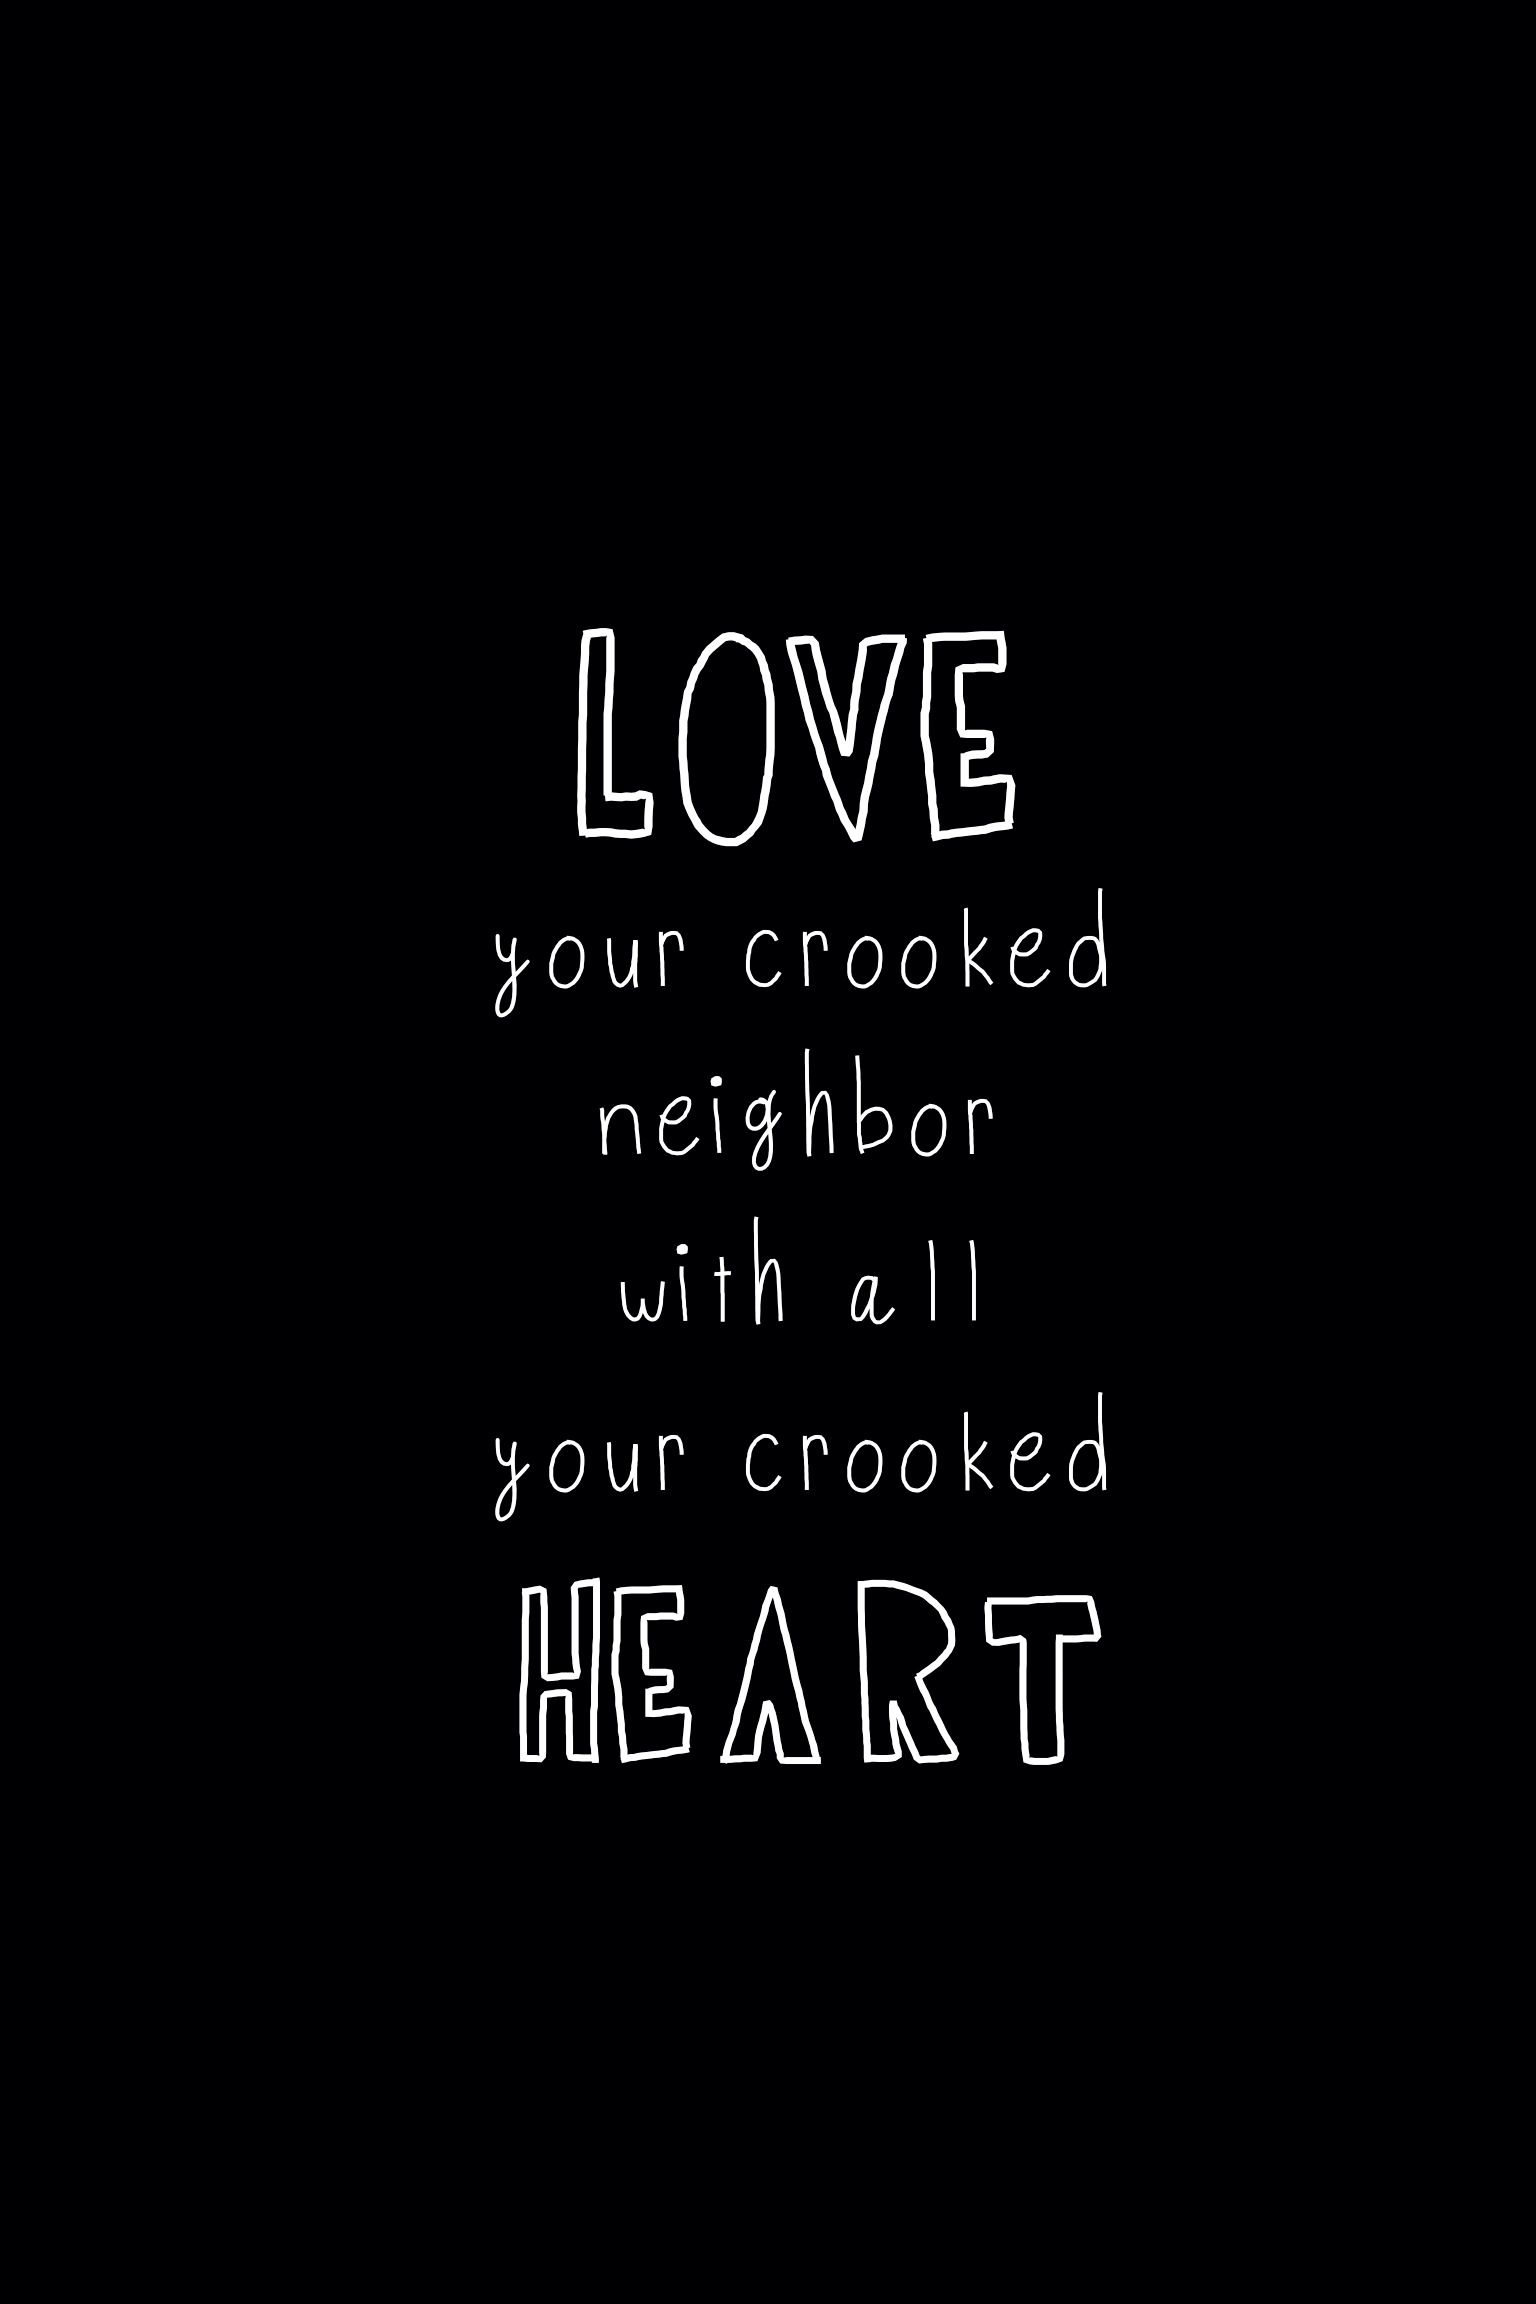 Quote About Looking For Love You Shall Love Your Crooked Neighbor With All Your Crooked Heart